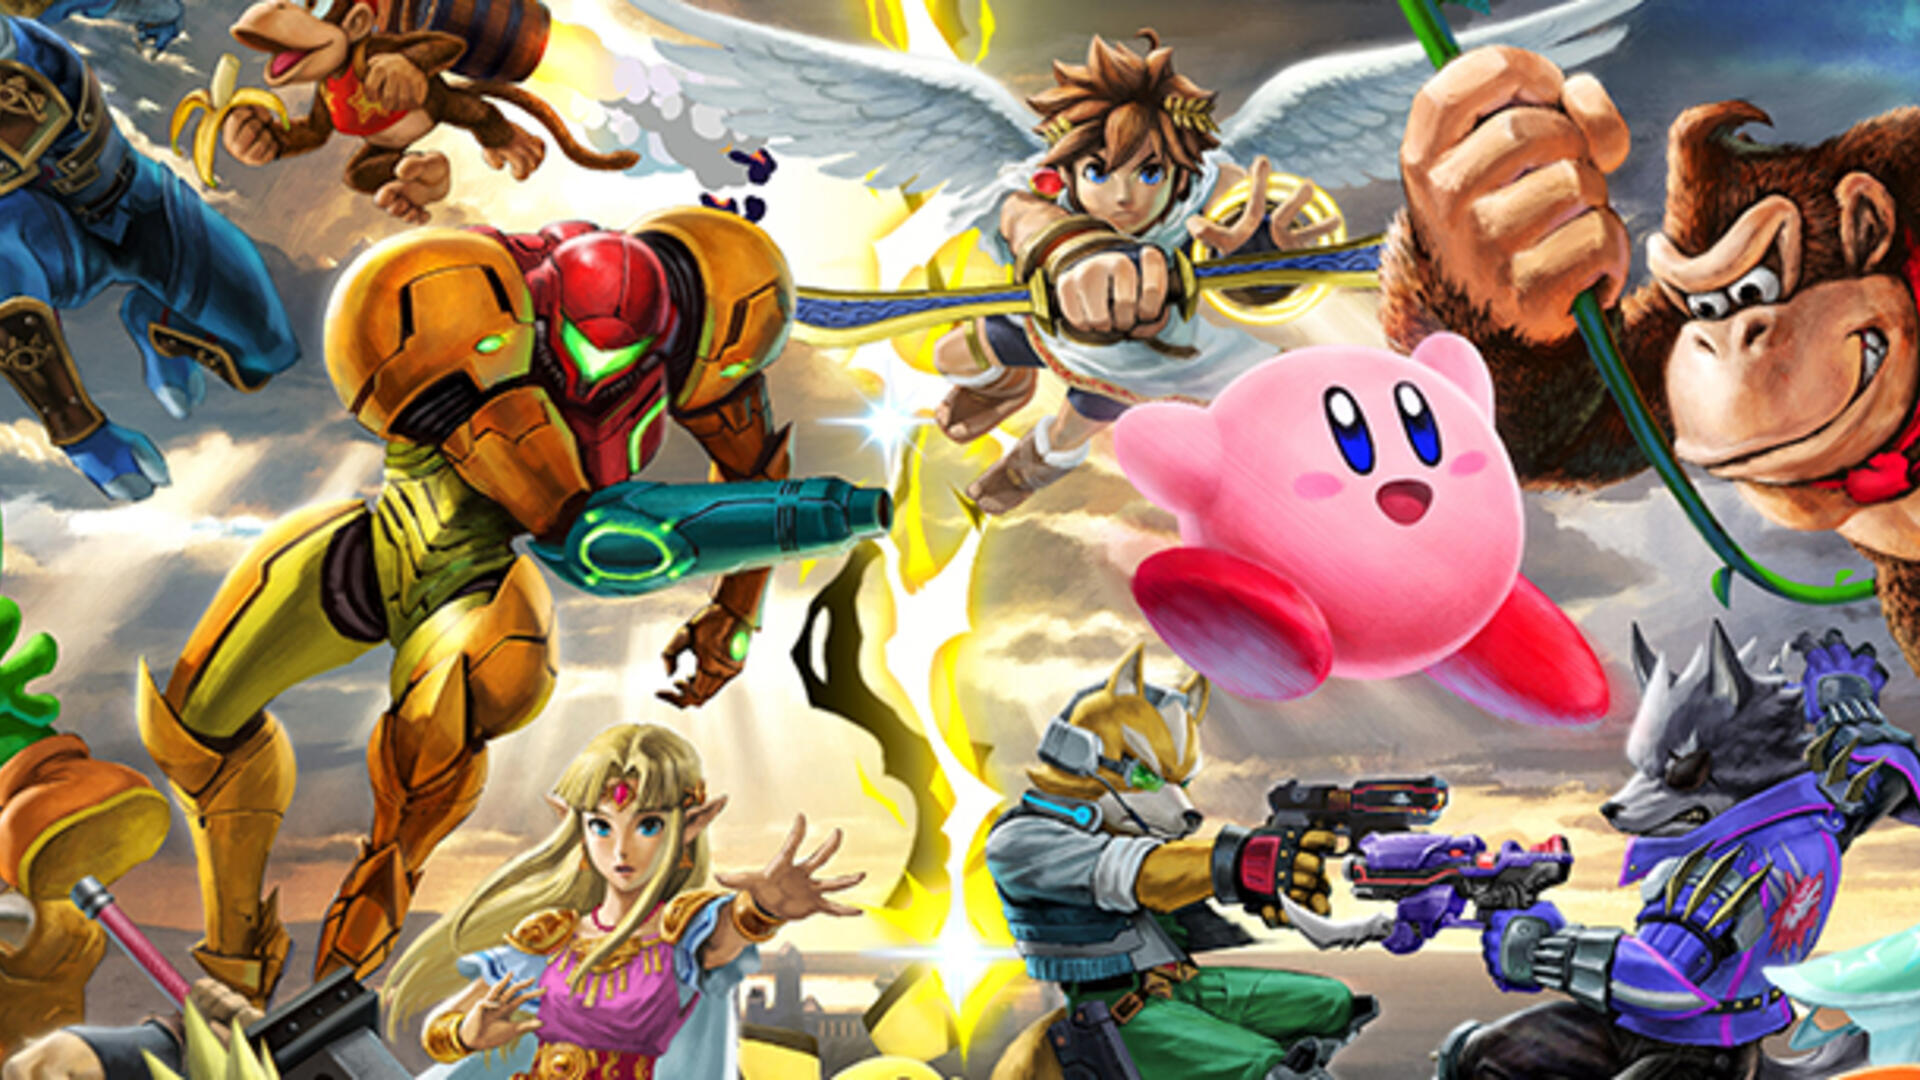 Super Smash Bros Ultimate Sells 3 Million Copies, Making it the Switch's Fastest-Selling Game